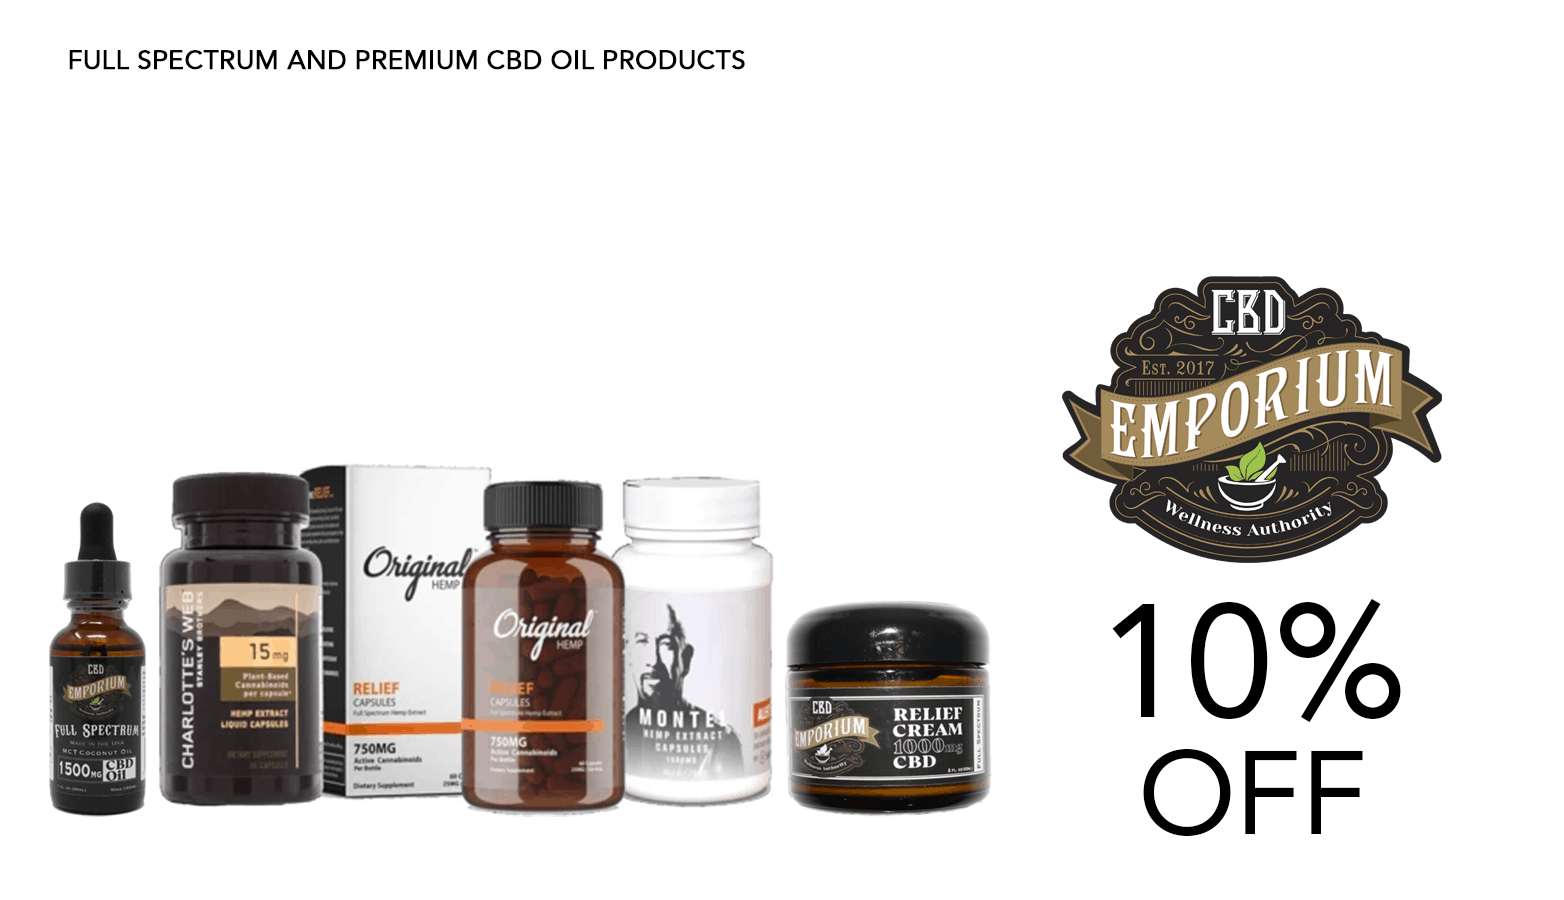 CBD Emporium Coupon Code Promo Website